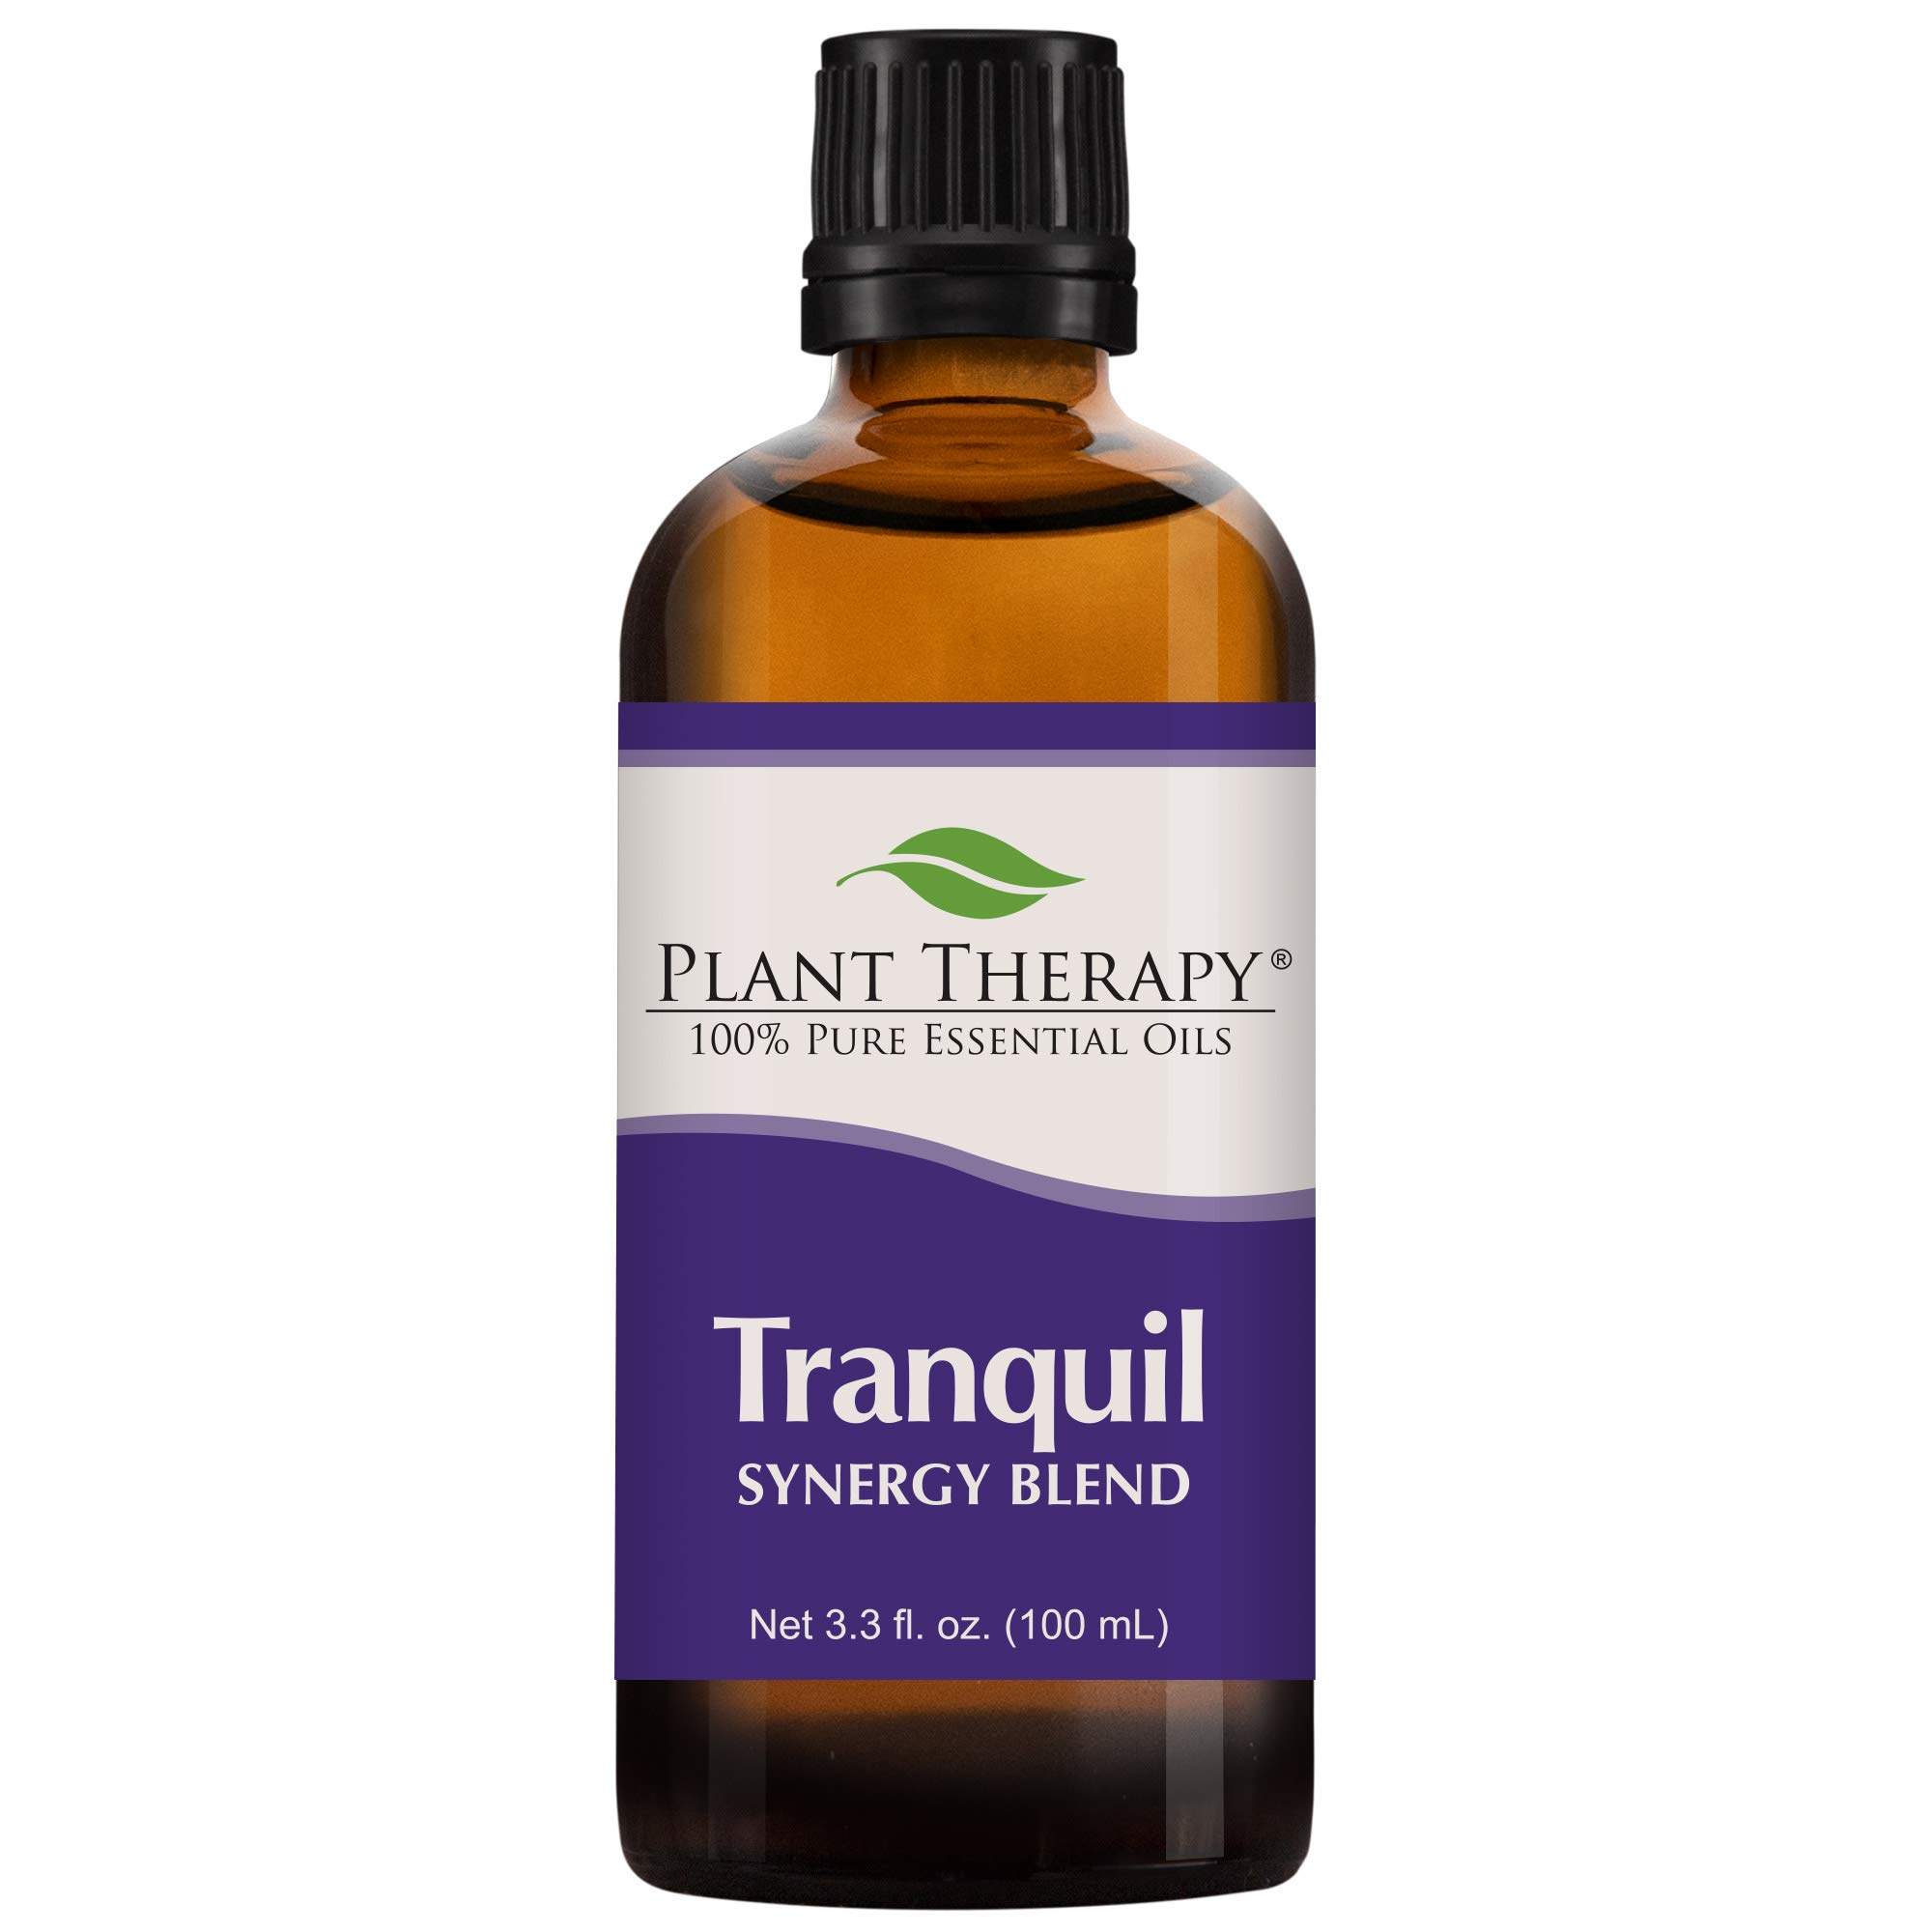 Plant Therapy Essential Oils Tranquil Synergy Blend - Stress Relief, Sleep, Peace & Calming Blend 100% Pure, Undiluted, Natural Aromatherapy, Therapeutic Grade 100 mL (3.3 oz) by Plant Therapy